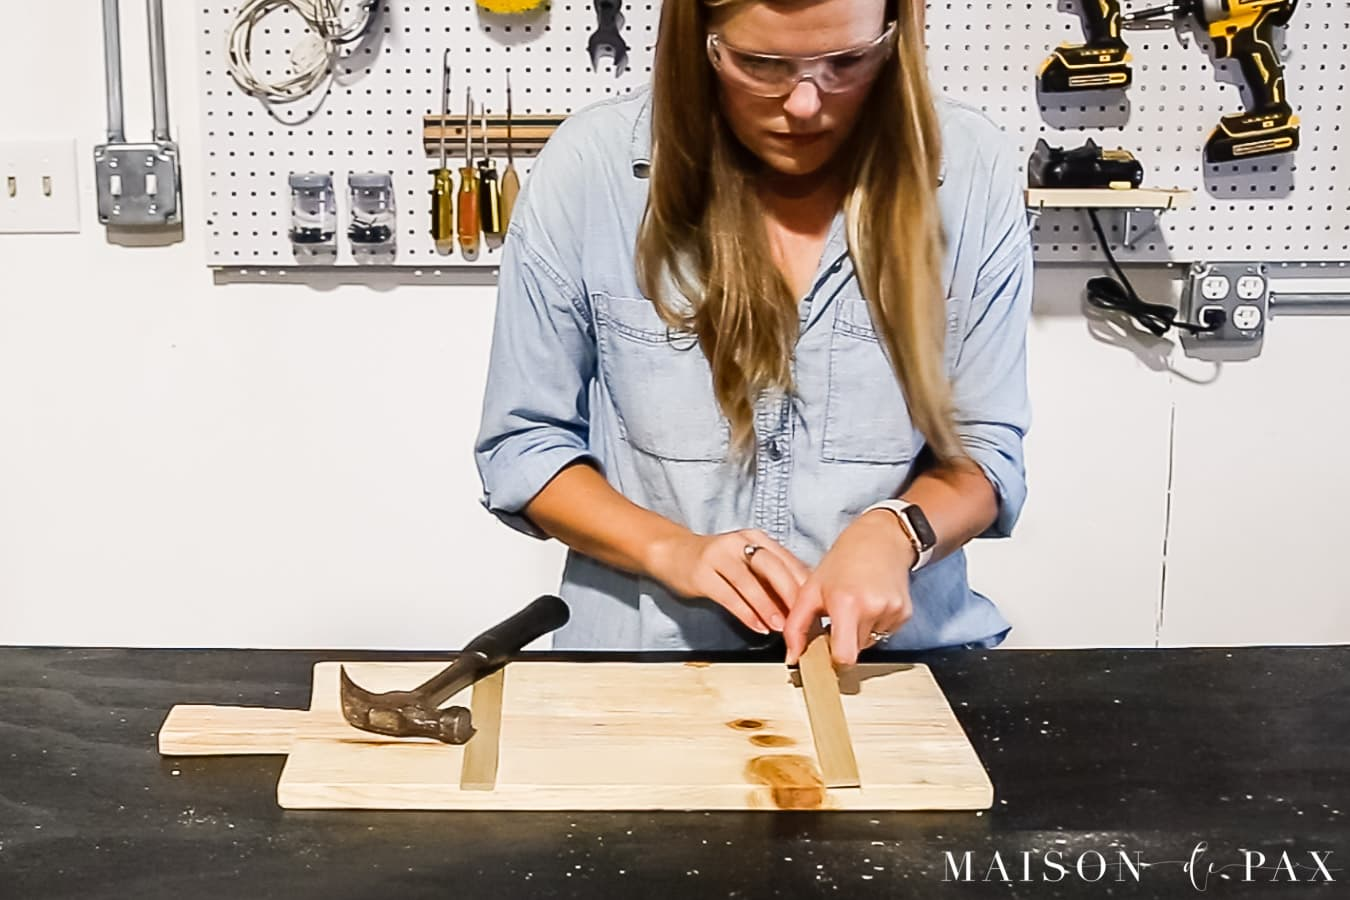 installing cross grain pieces into wood serving board | Maison de Pax